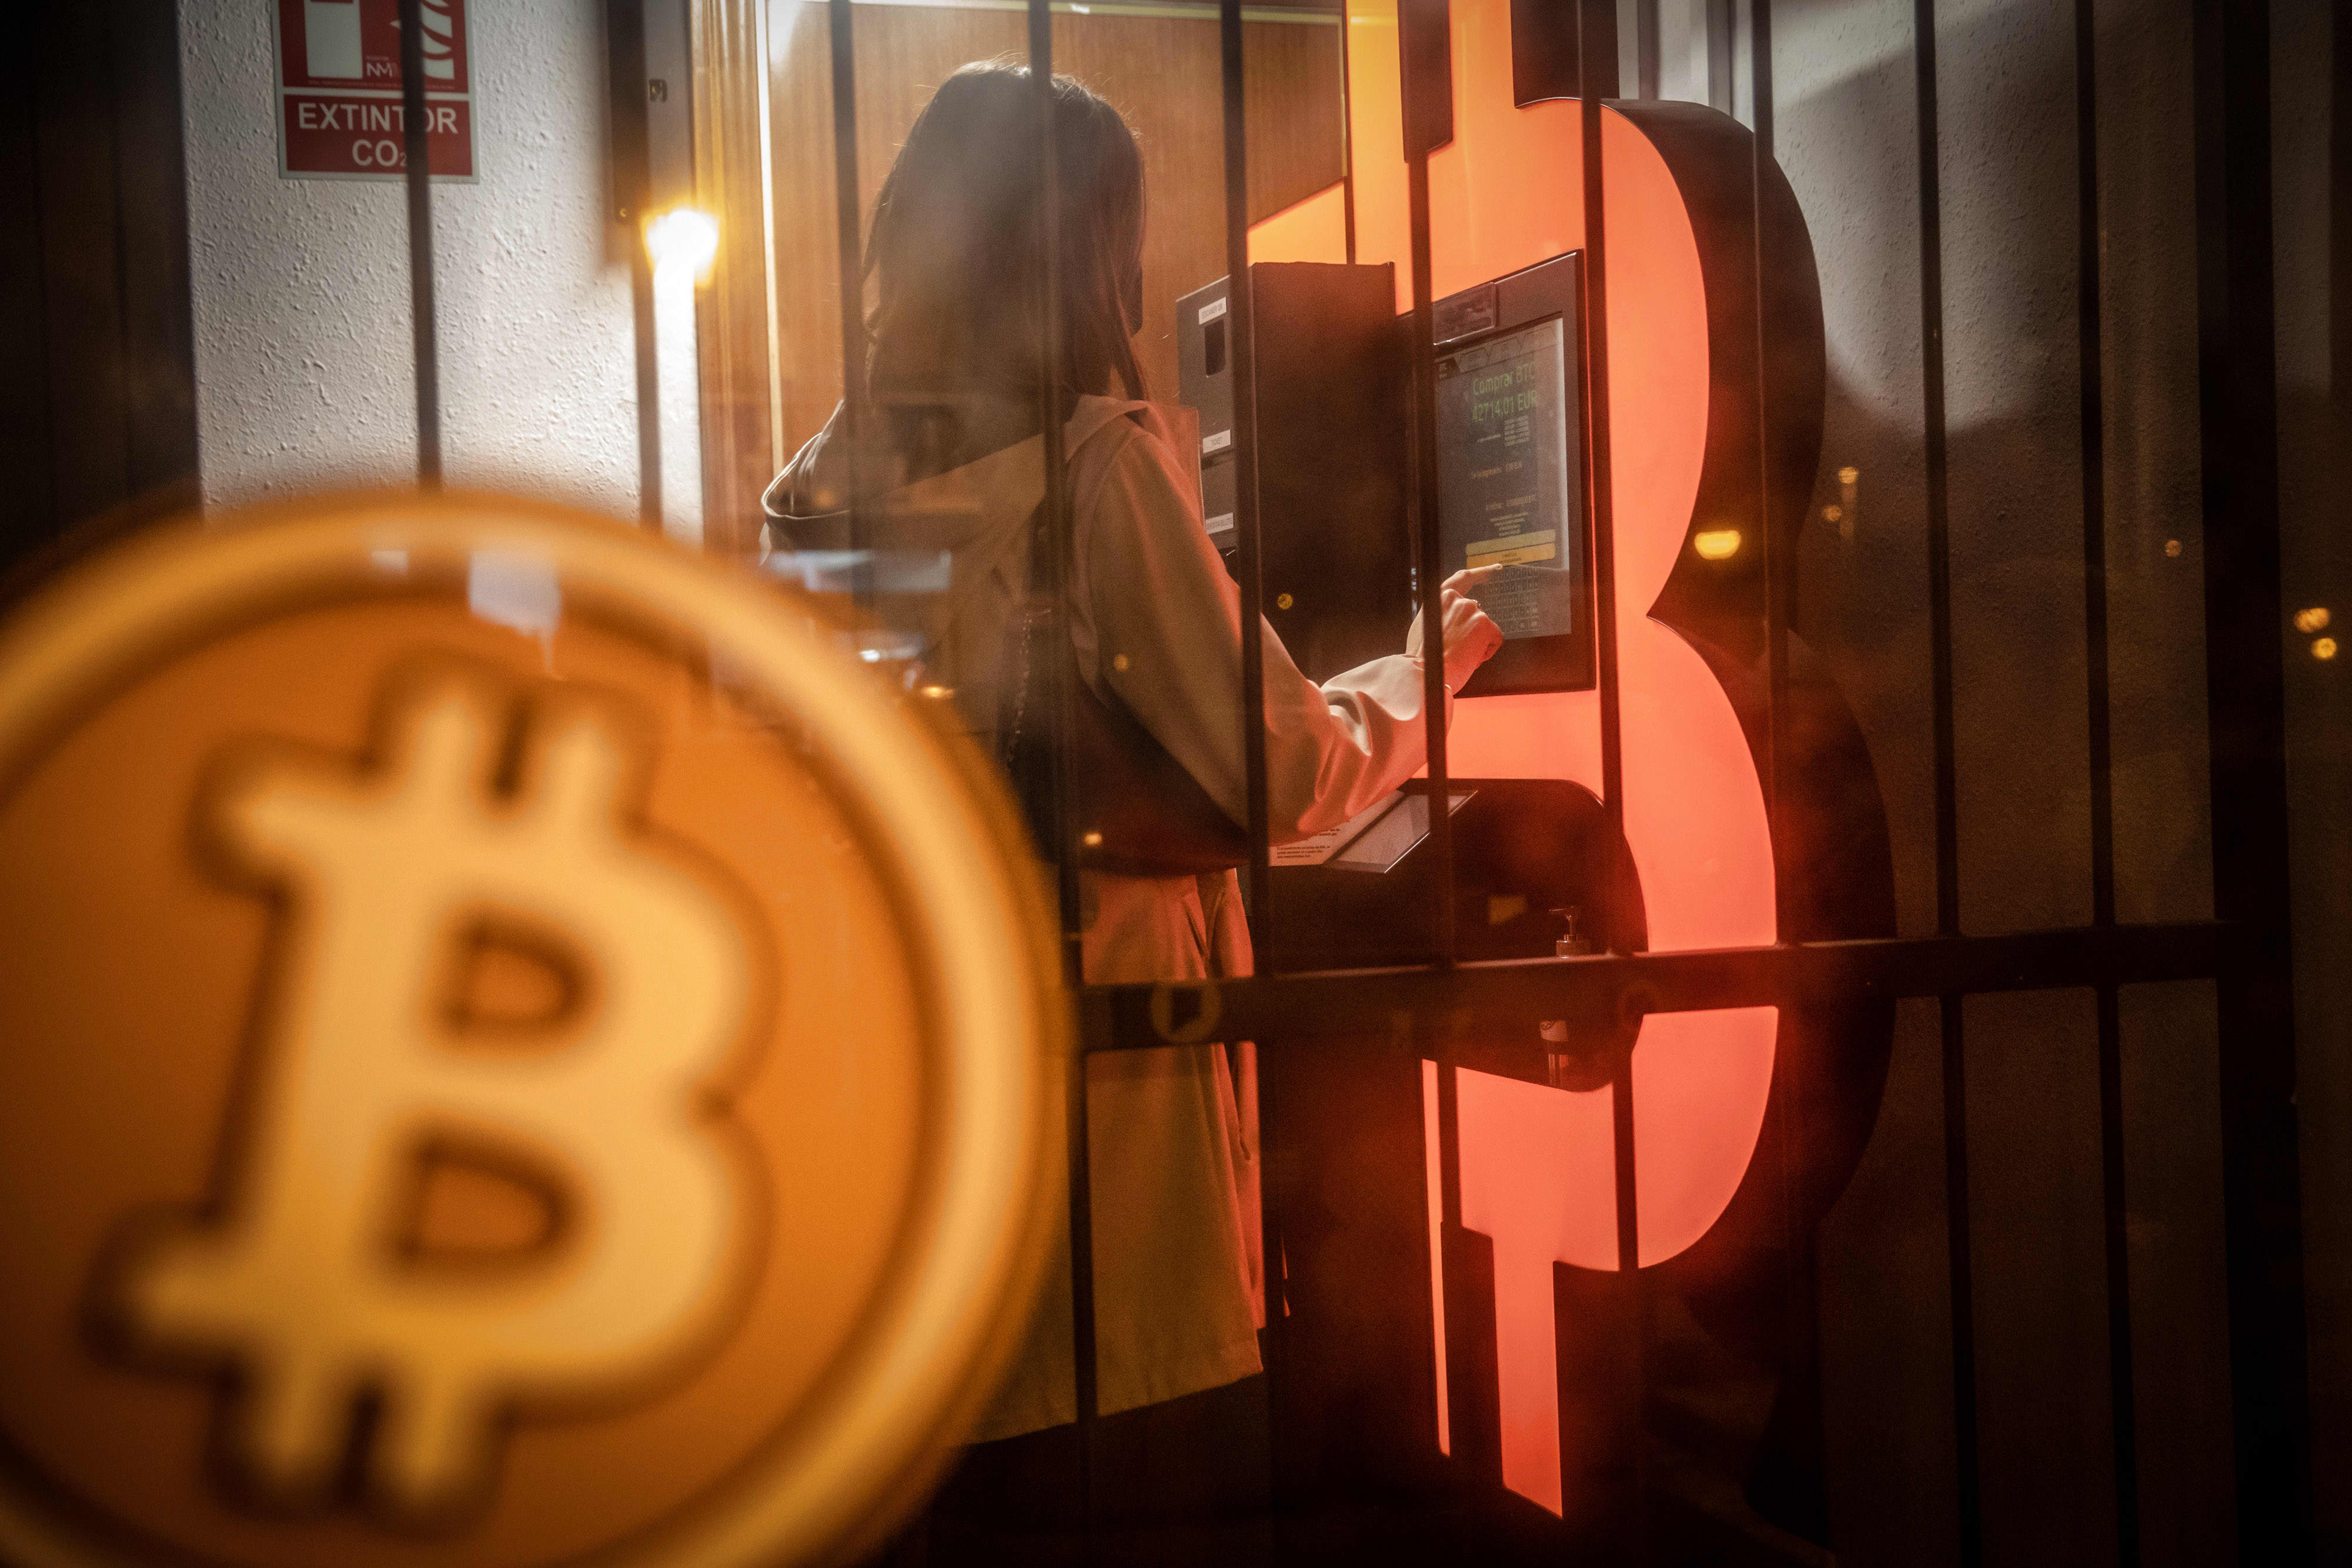 Central banks around the world want to get into digital currencies—here's why